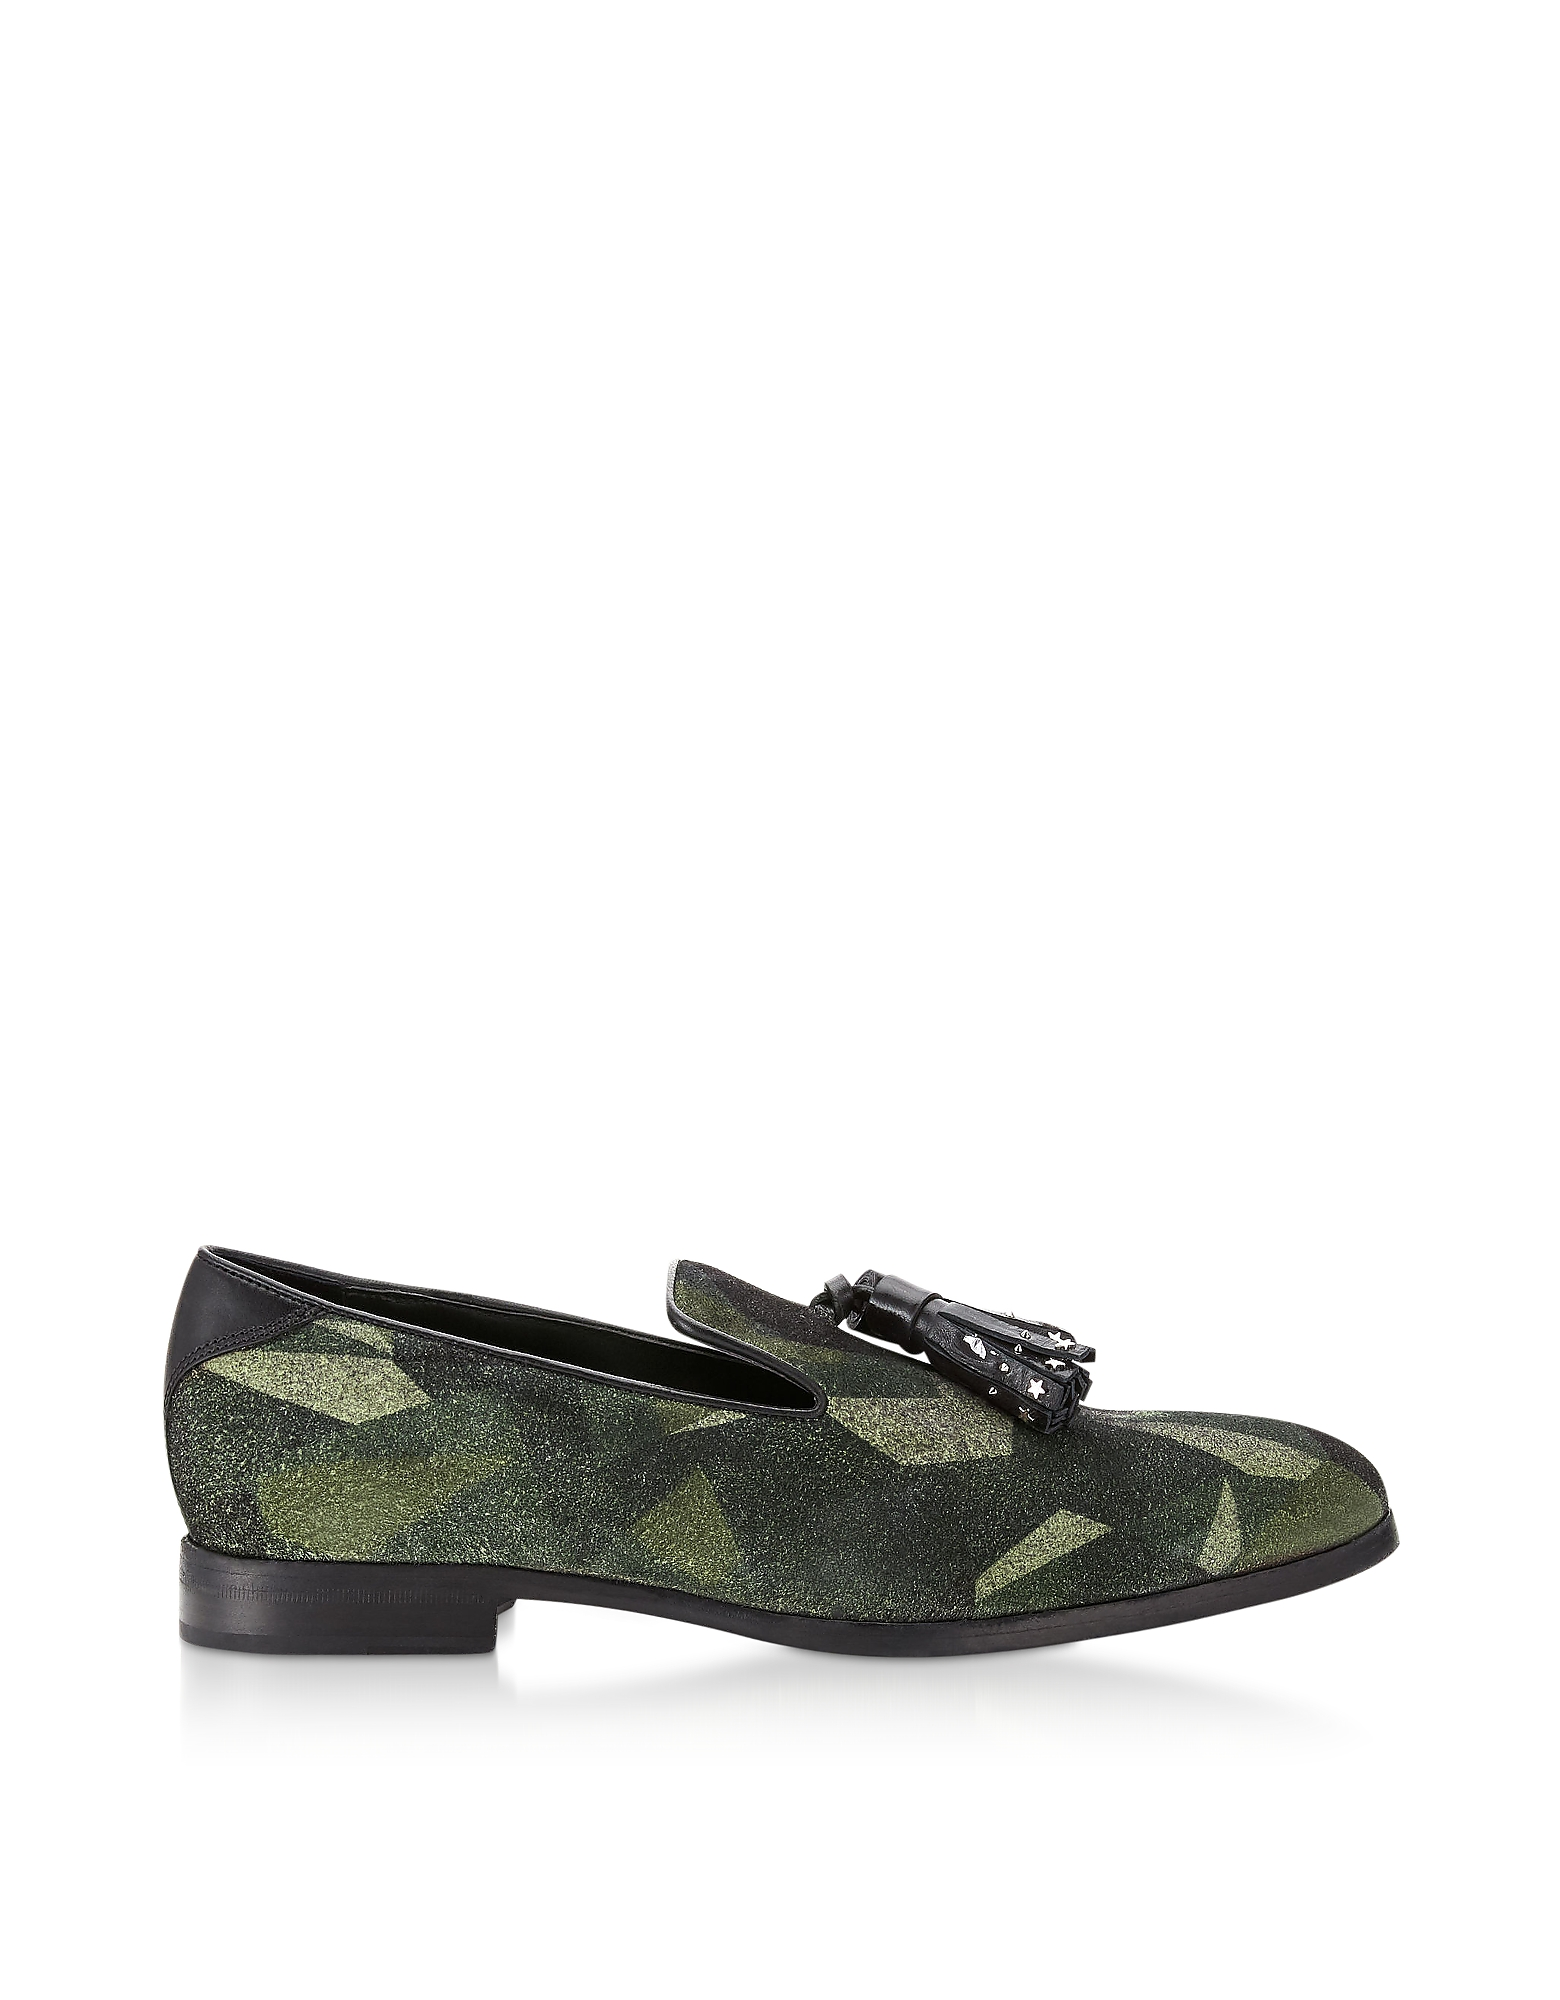 Jimmy Choo Designer Shoes, Camo Print Suede Foxley UUA Loafers w/ Studded Tassel